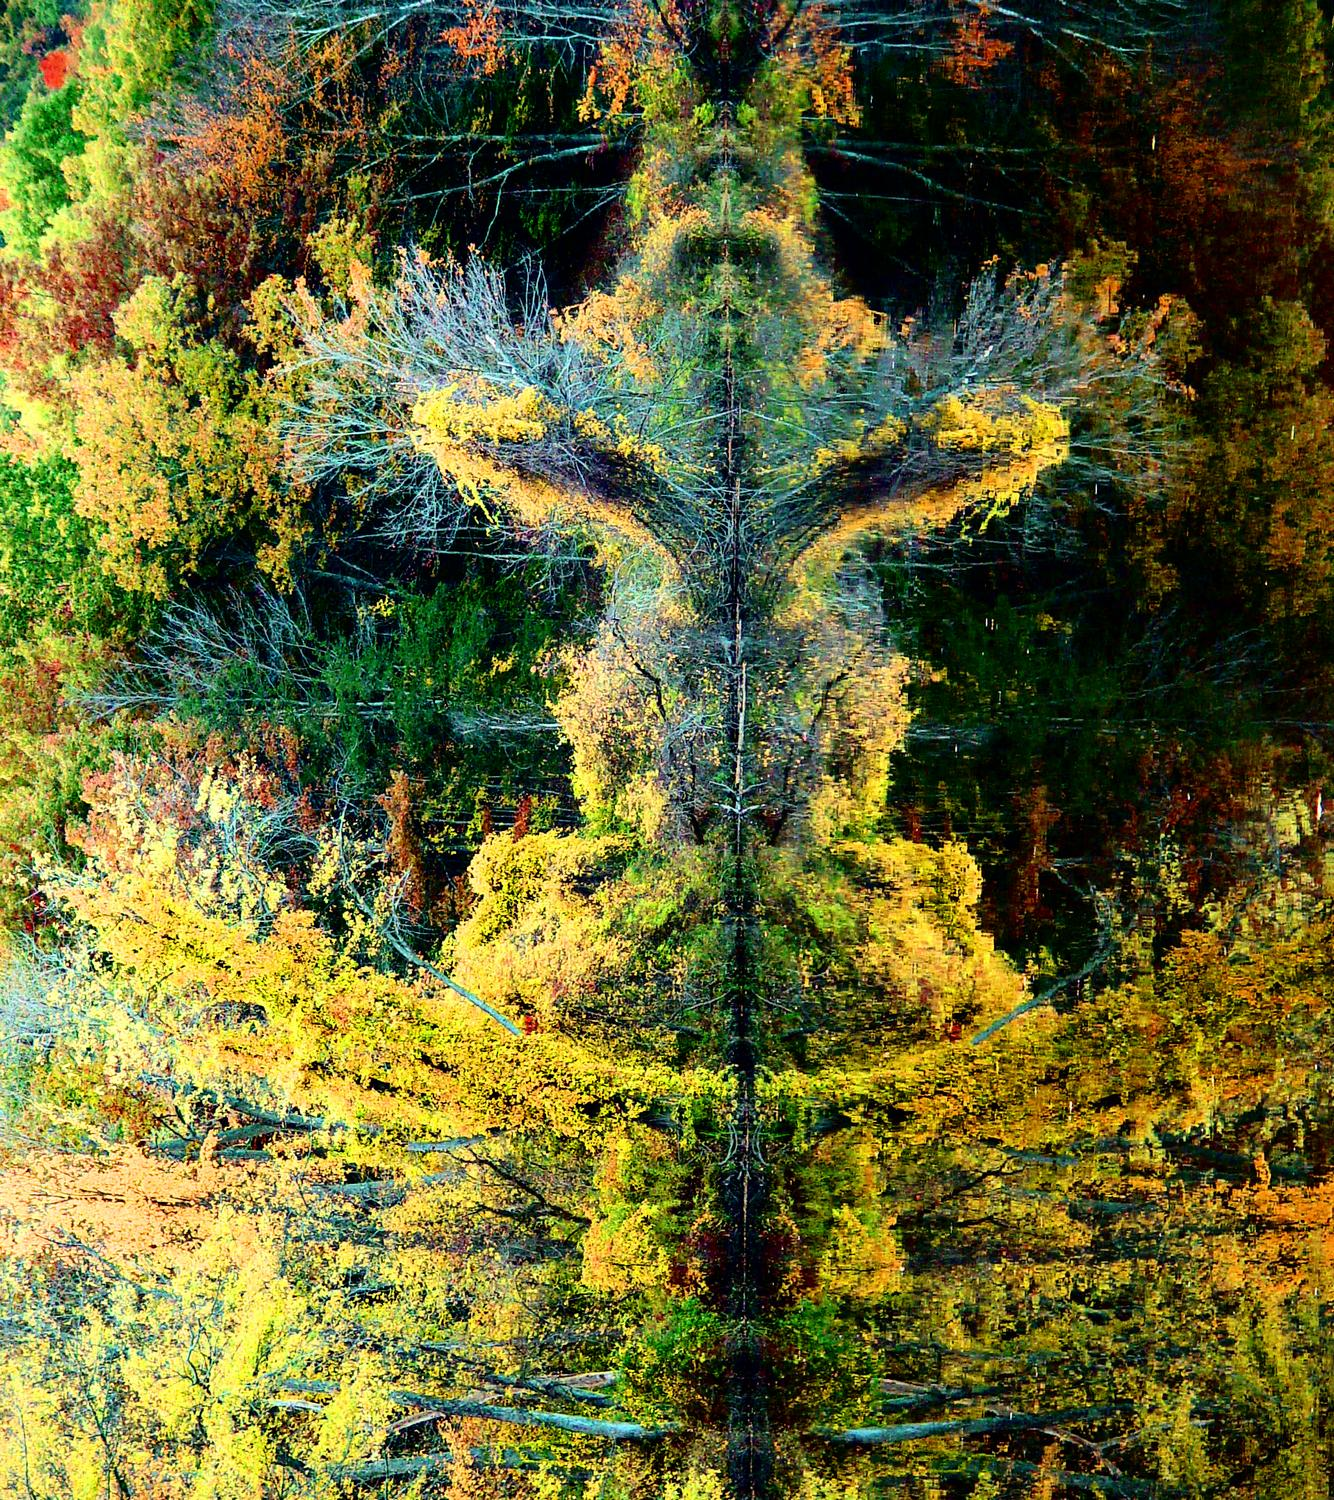 - The spirit of autumn - Techno-Impressionist Museum - Techno-Impressionism - art - beautiful - photo photography picture - by Tony Karp